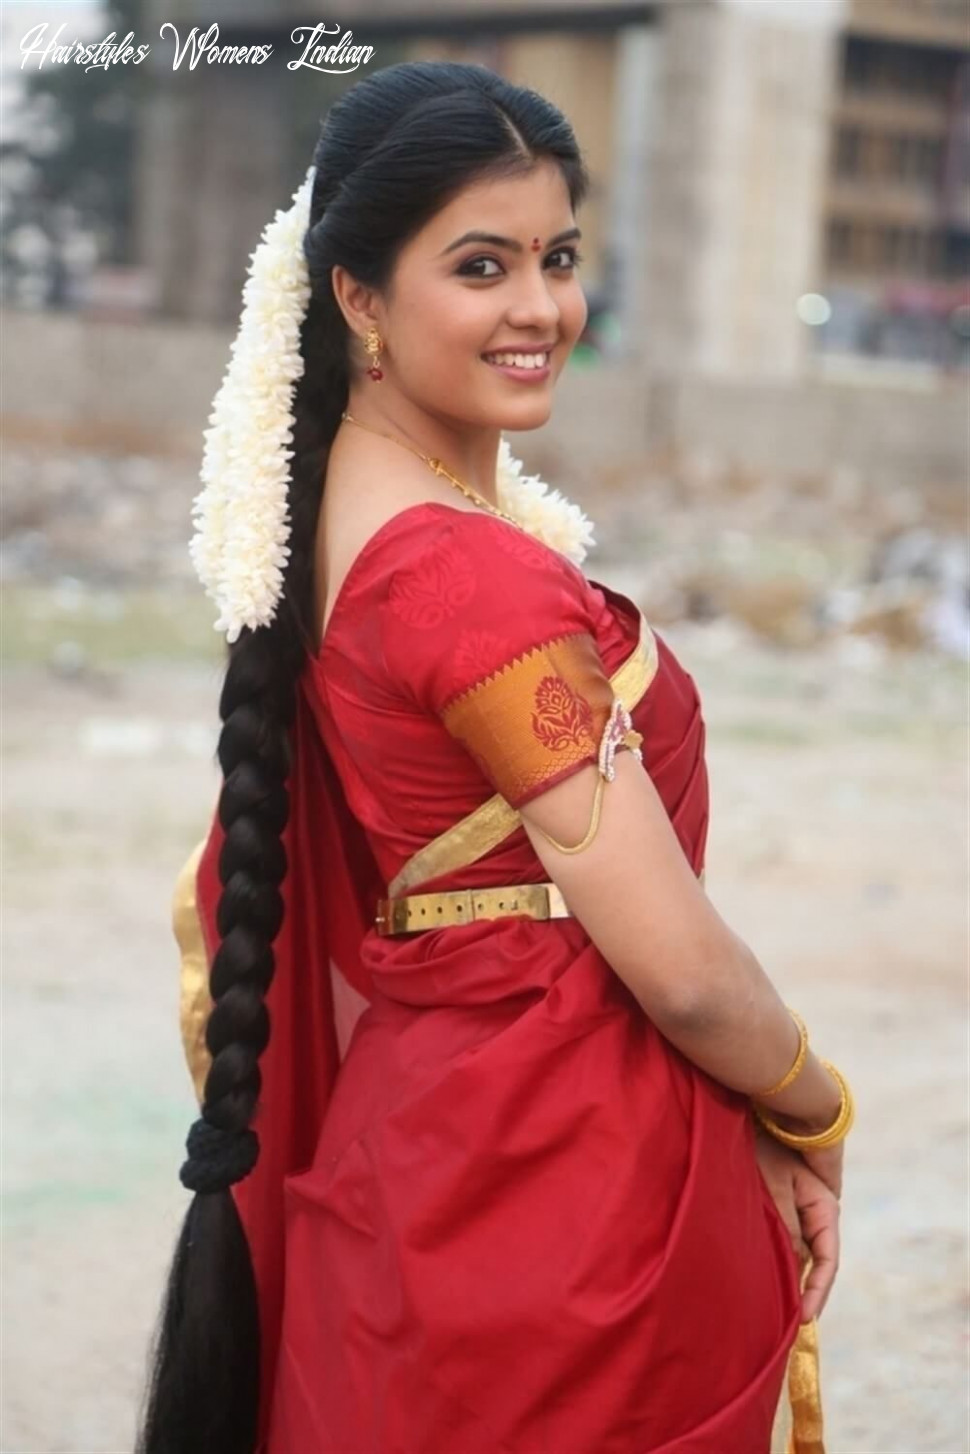 South indian woman with long braid and fresh jasmines in her hair